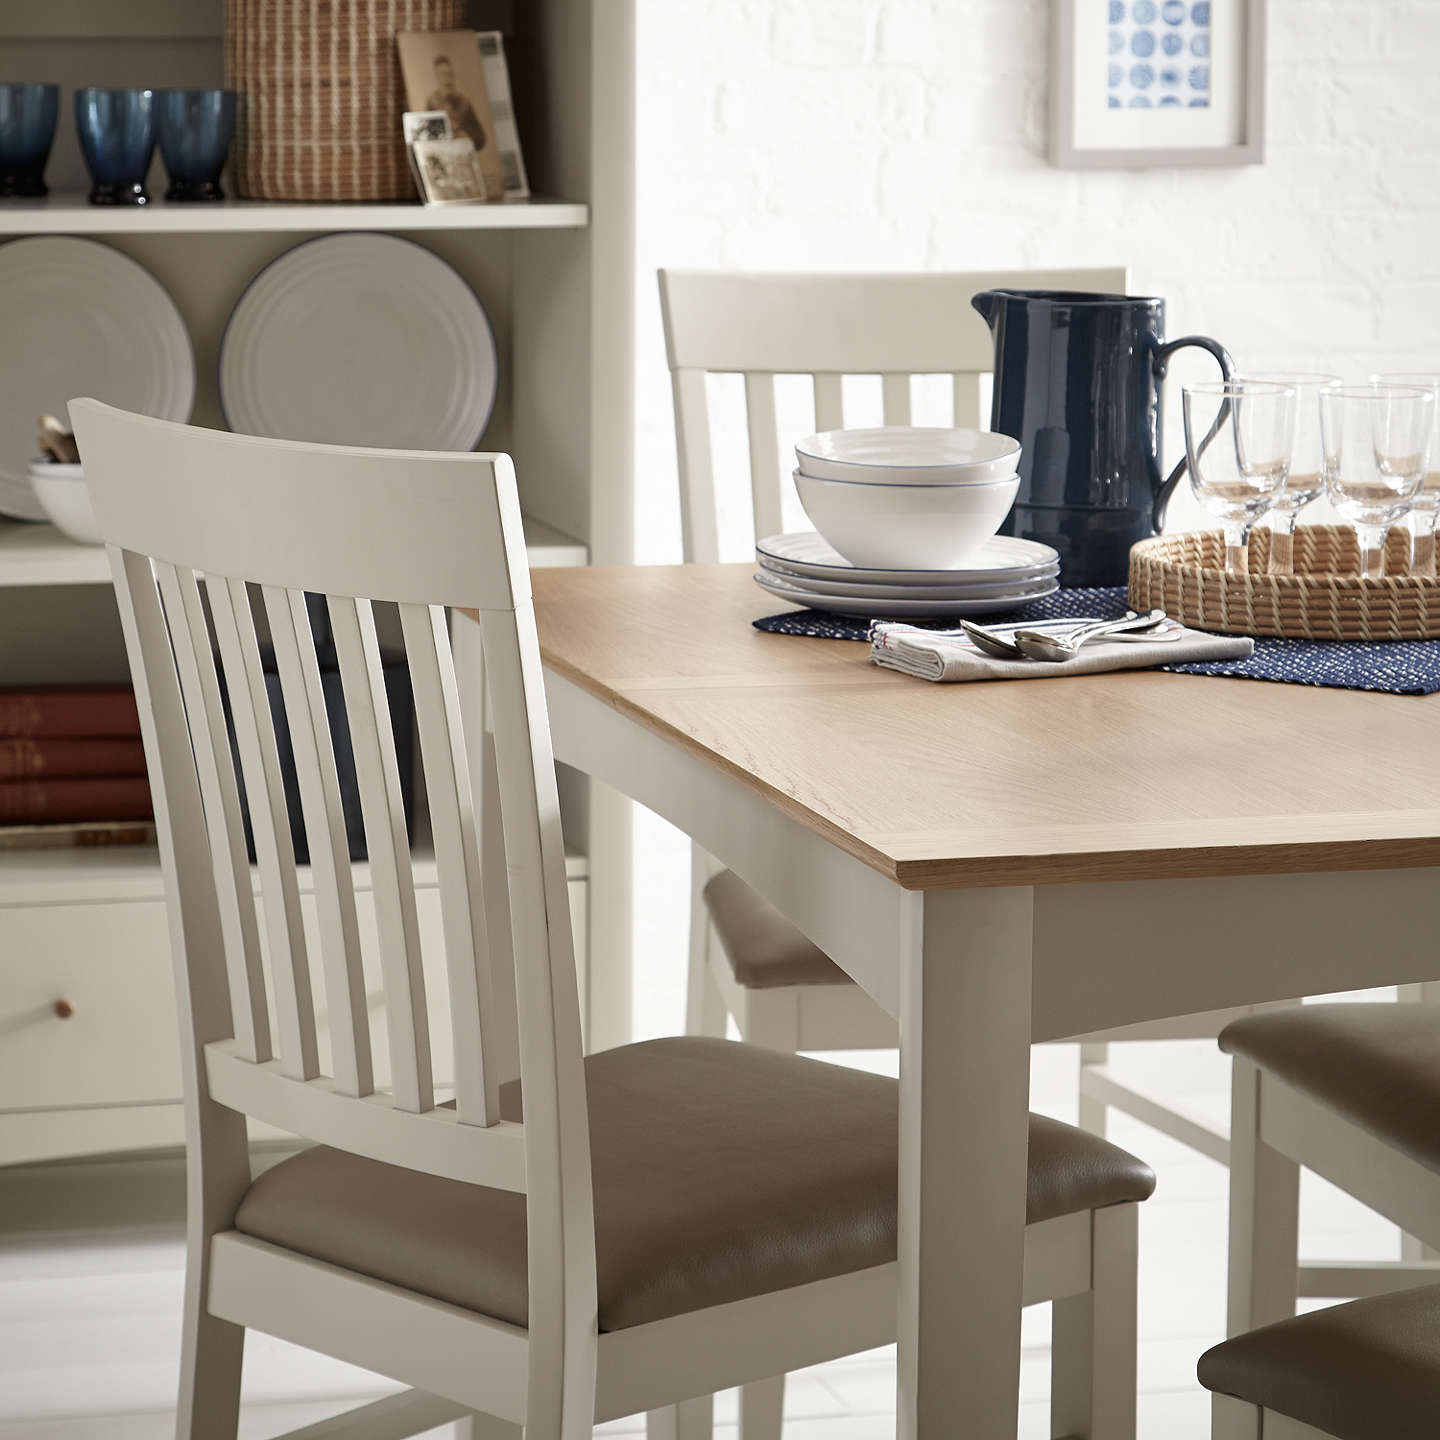 BuyJohn Lewis Alba 4-6 Seater Extending Dining Table, Soft Grey/Oak Online at johnlewis.com